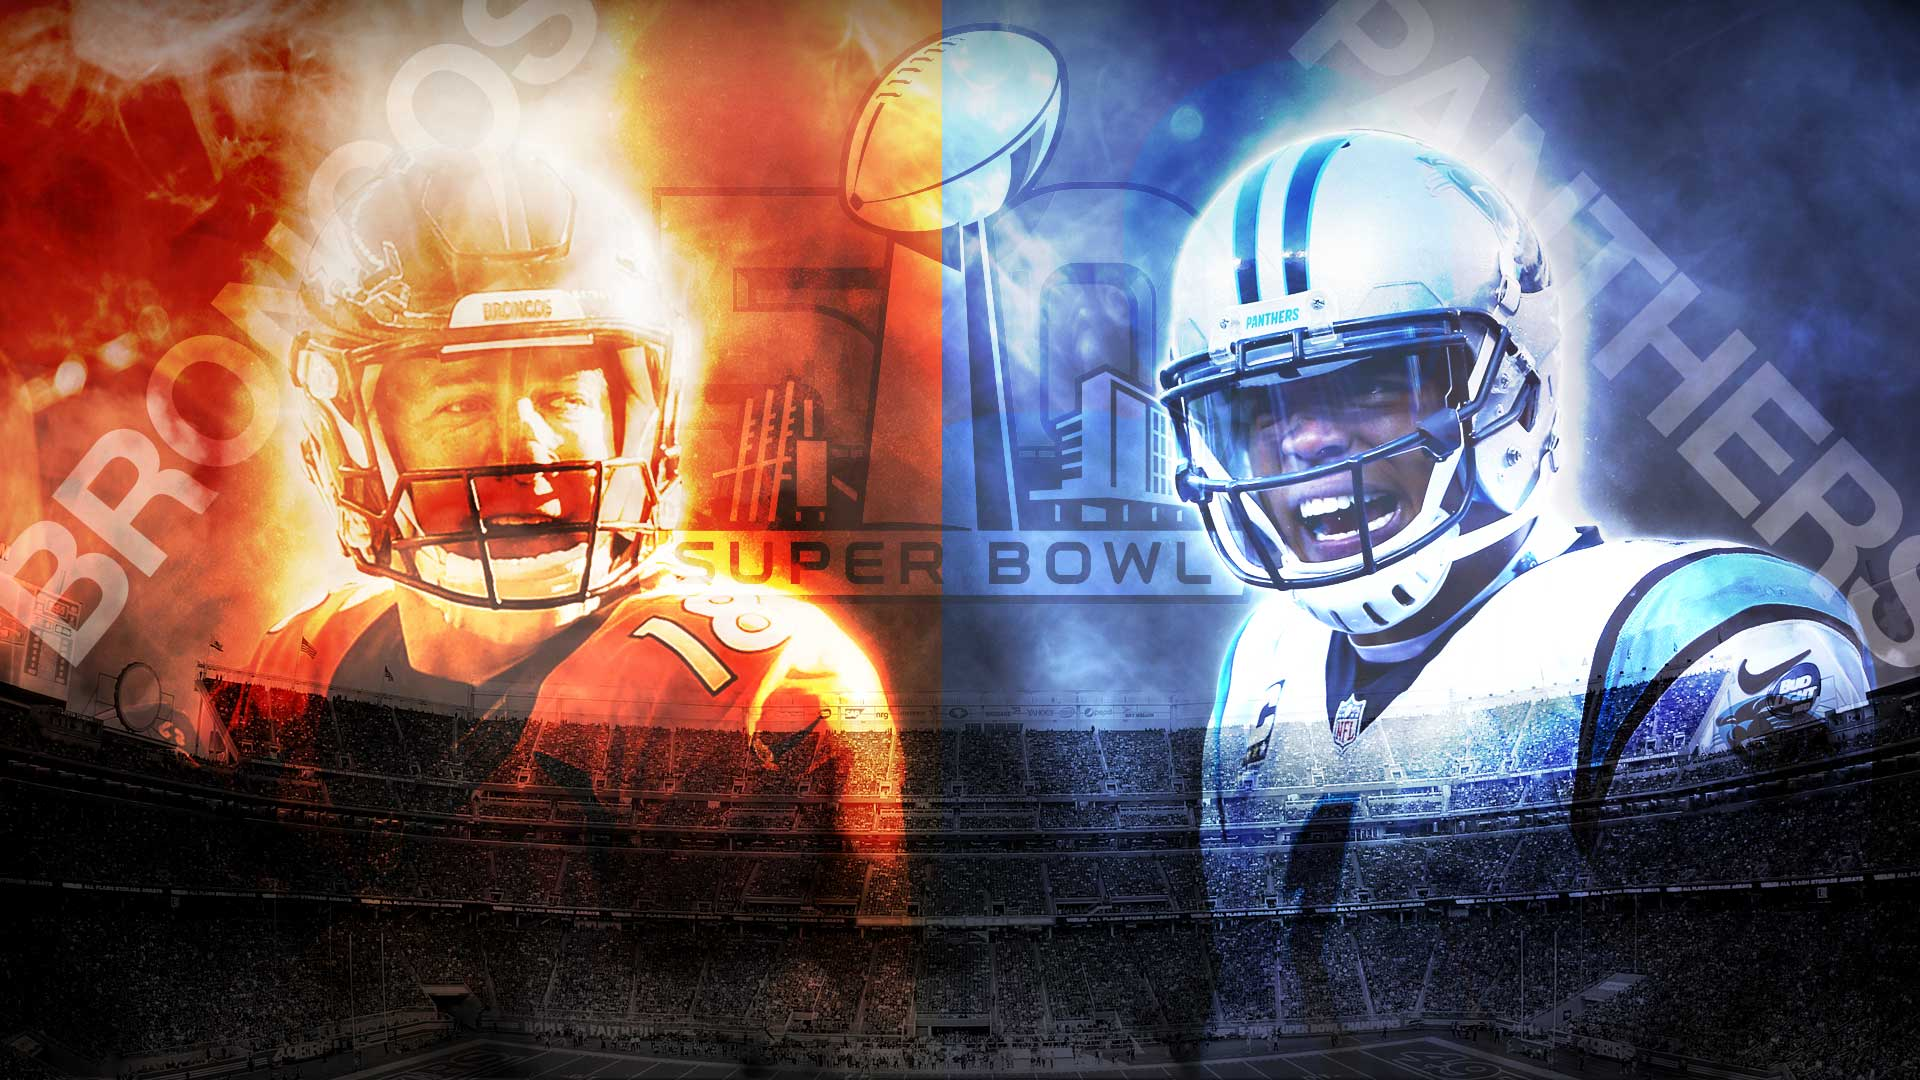 [NFL] SB 50: Il Preview del Super Bowl 50